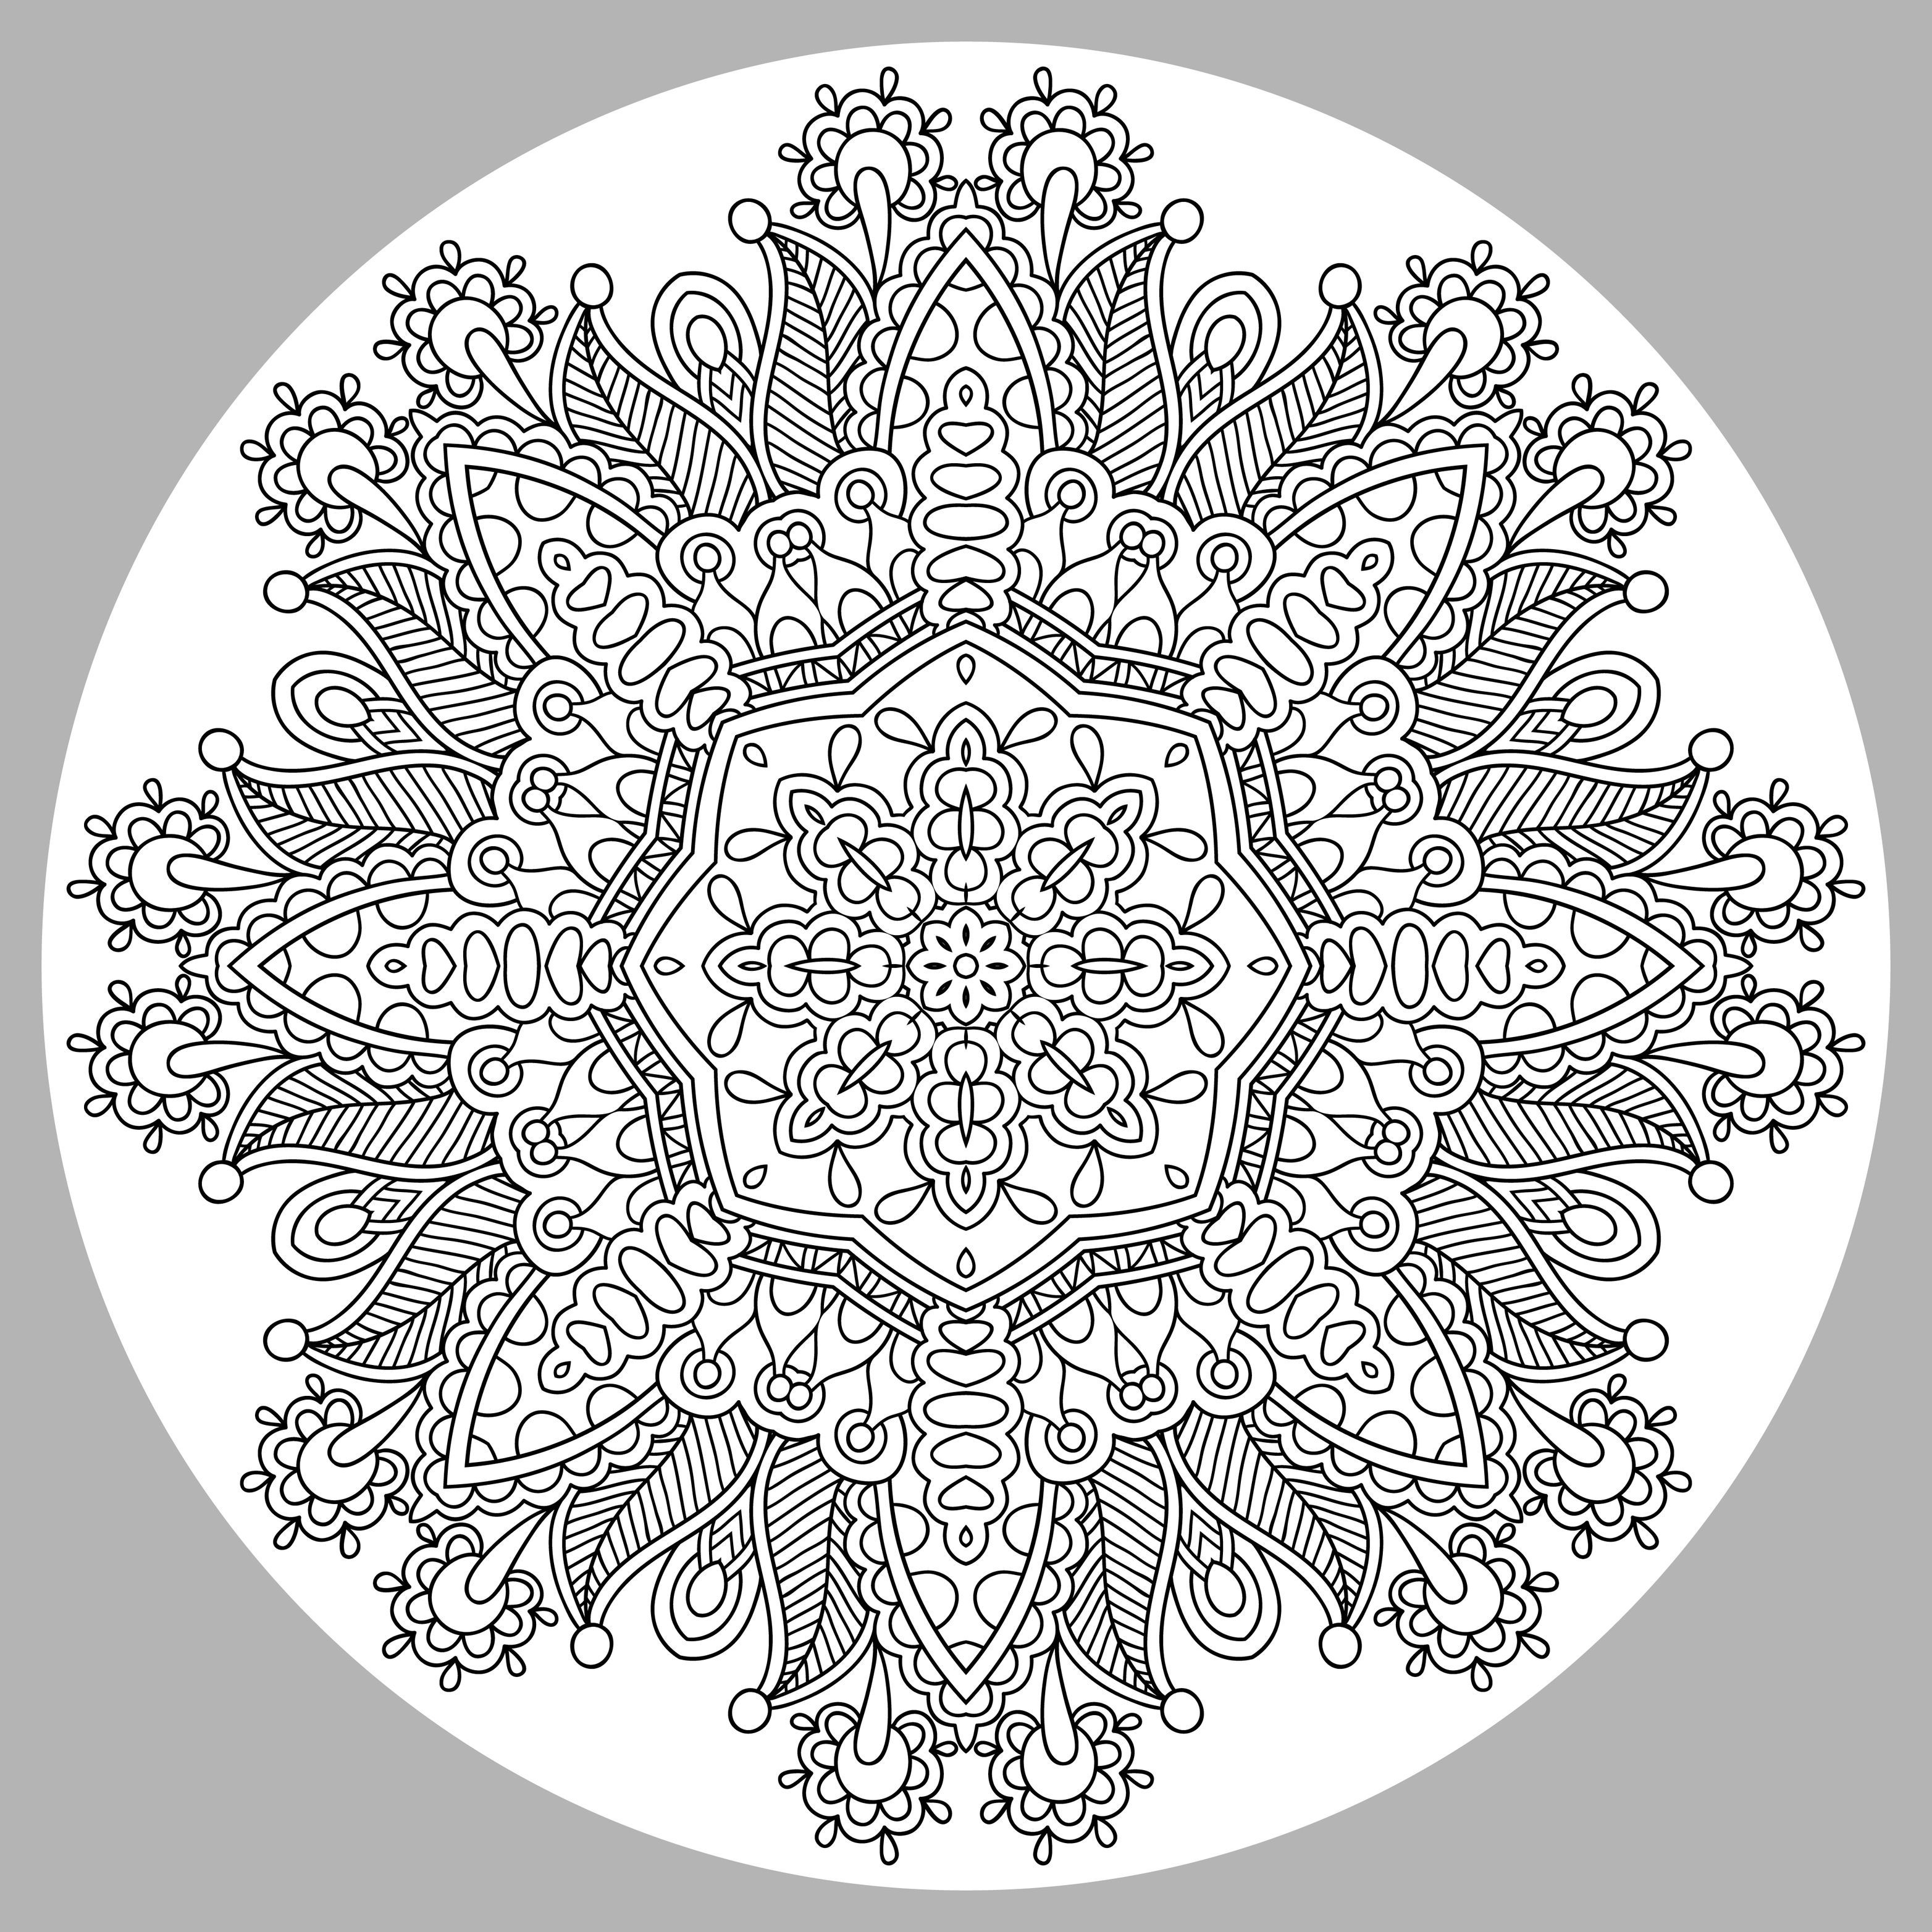 Free Mandalas To Print And Color Very Difficult Mandalas For Adults Mandala Coloring Pages Mandala Coloring Books Mandala Coloring